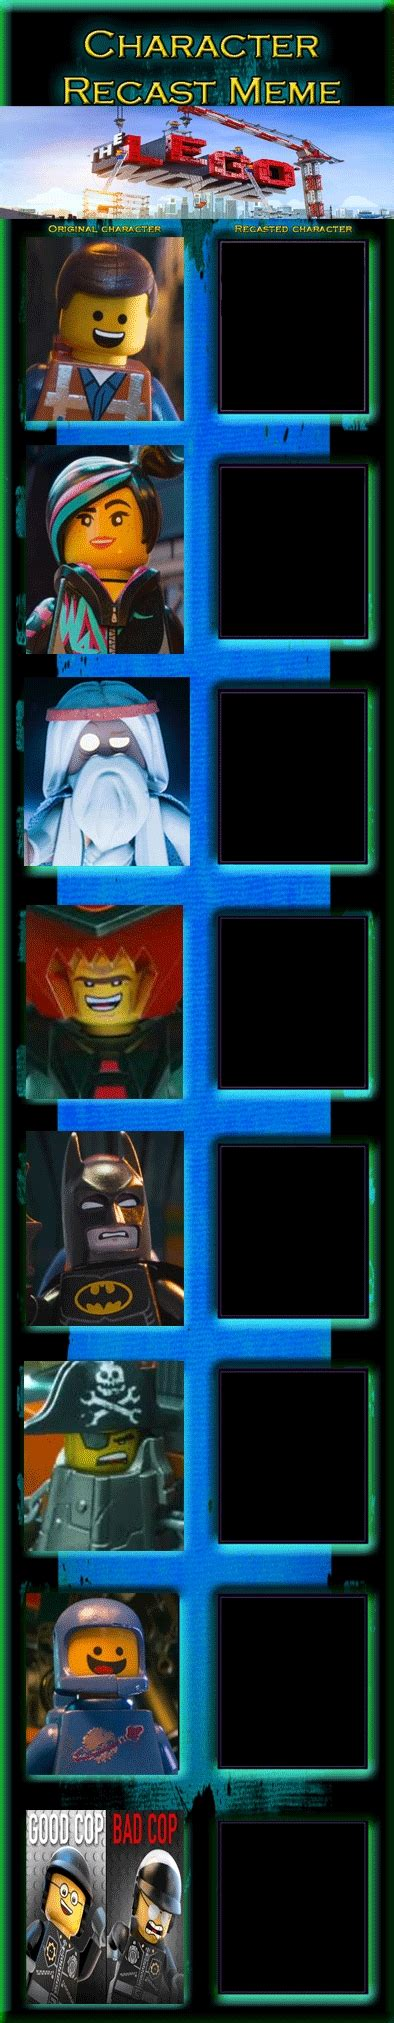 The Lego Movie Meme - the lego movie recast meme by jackskellington416 on deviantart